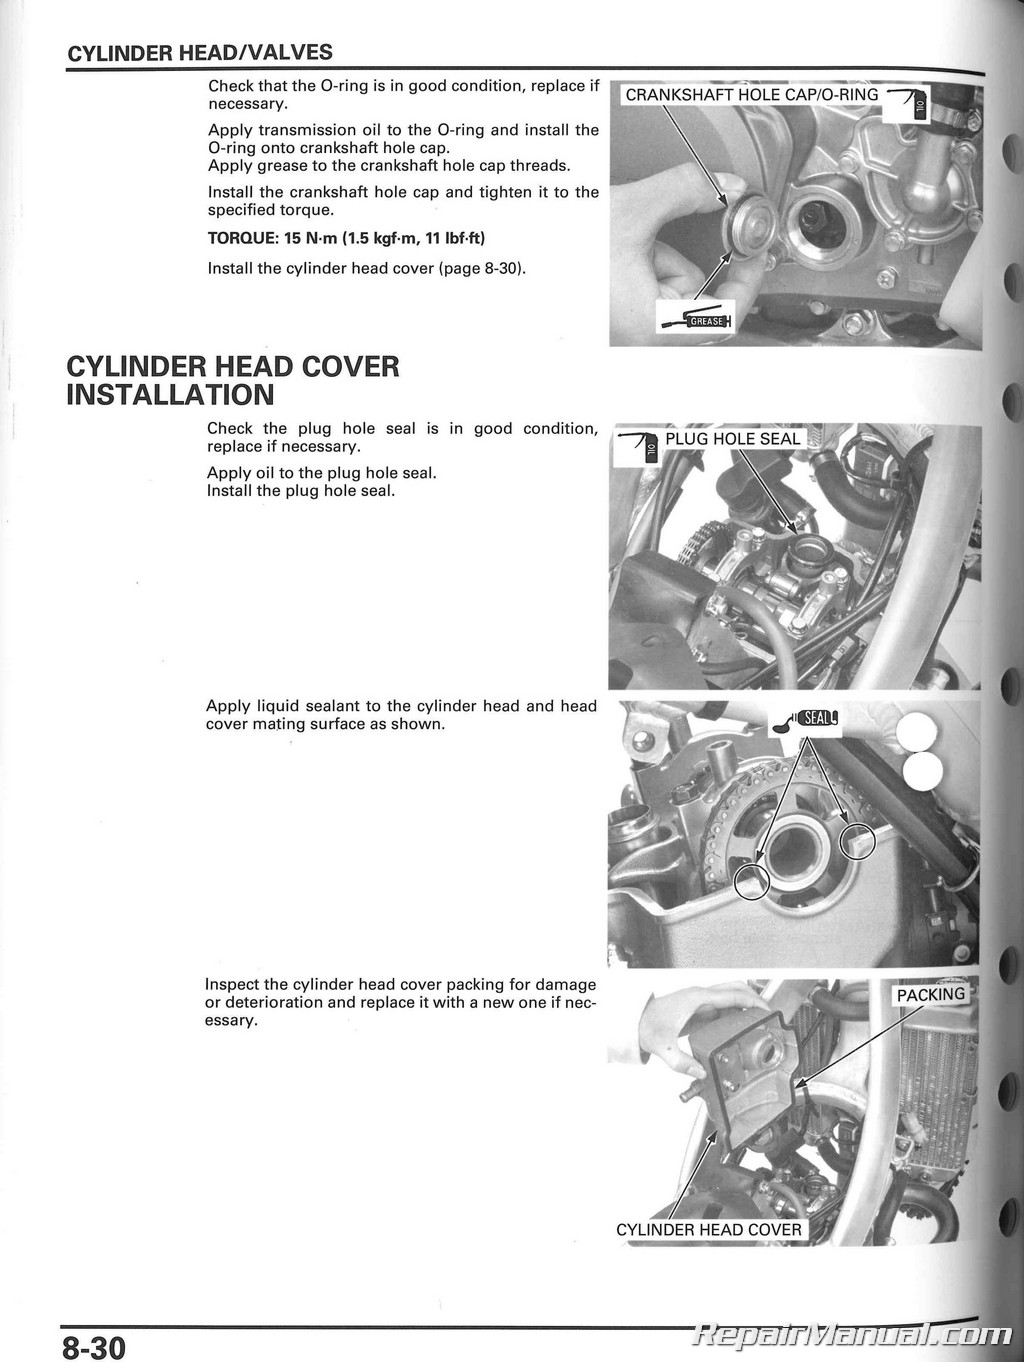 honda crf250x motorcycle manual service repair 2004 2009 2012 2015 rh repairmanual com 2012 Honda 250X 2012 honda crf250x owner's manual